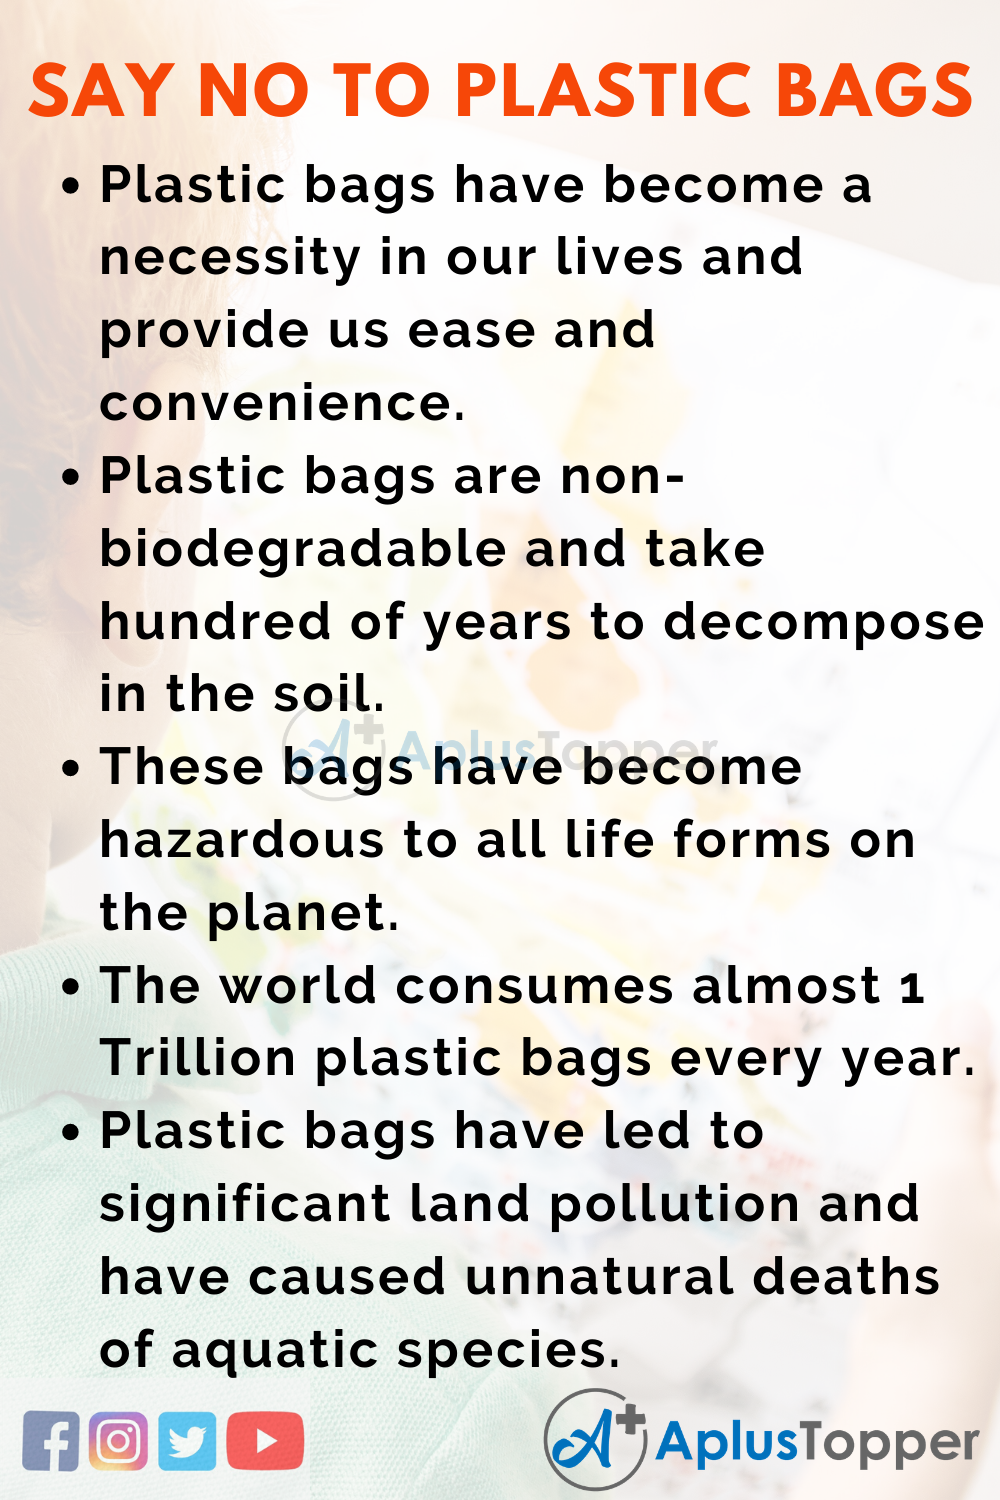 10 Lines for Say No to Plastic Bags